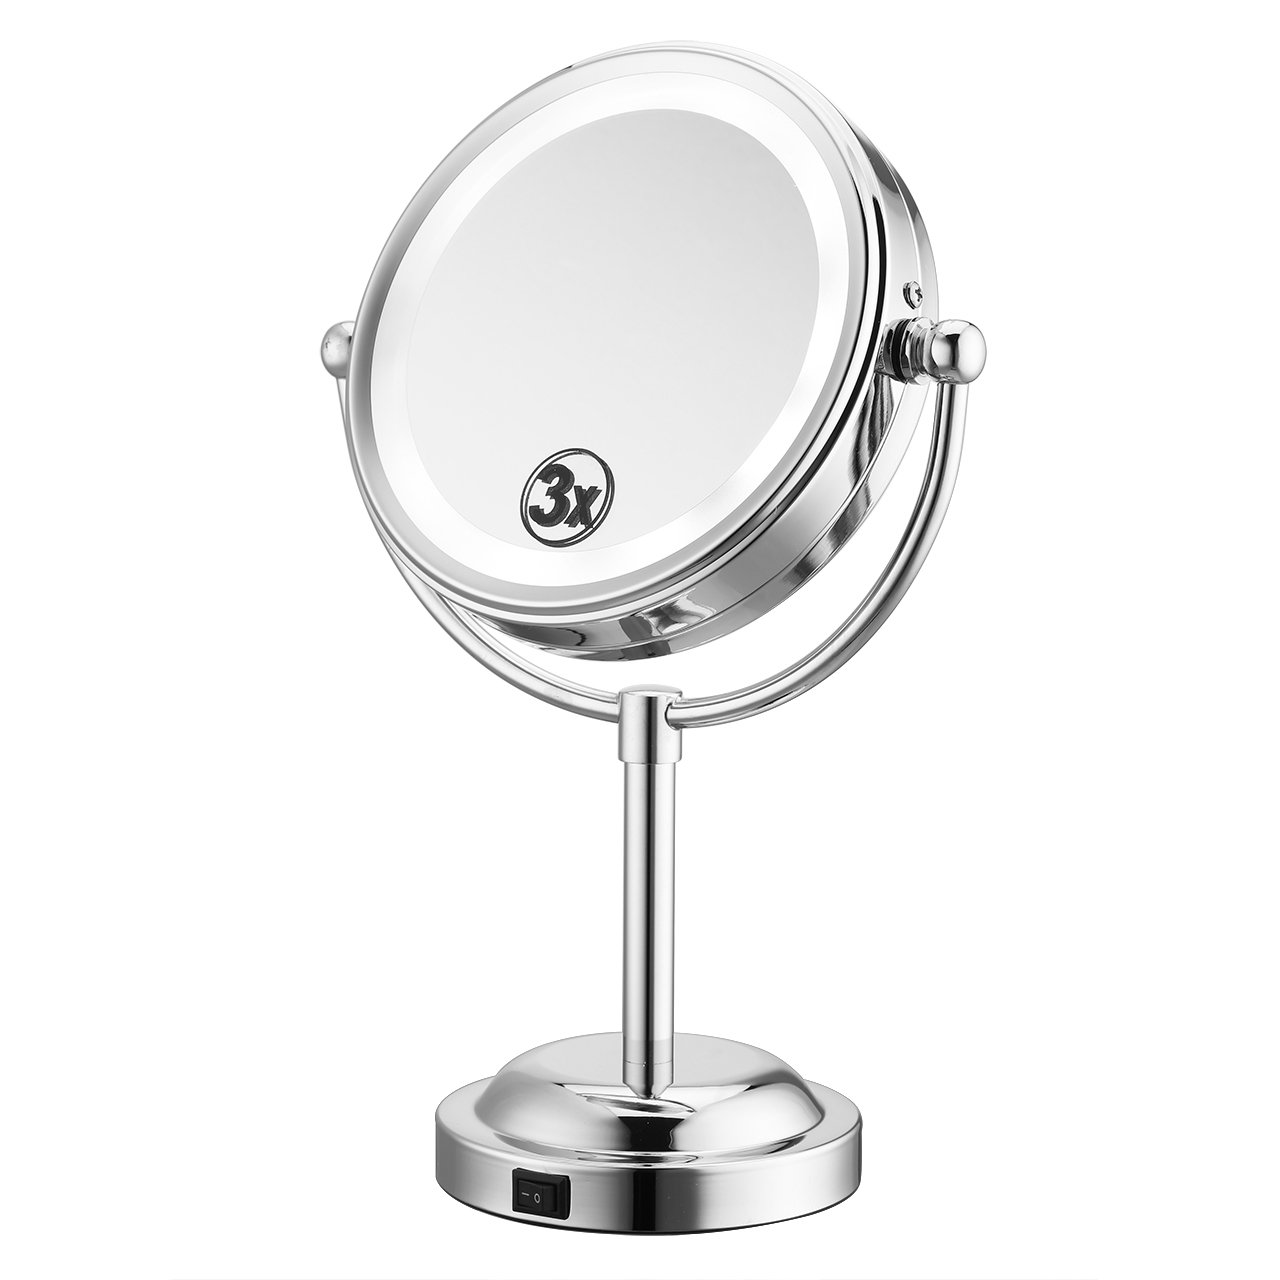 LIVINGbasics™ 24 LED Lighted Trifold Makeup Mirror Vanity Mirror with Touch Screen Dimming, Detachable 1X/2X/3X/10X Magnification Spot Mirror, High Definition and 180° Rotation, USB/Battery Charging, Black